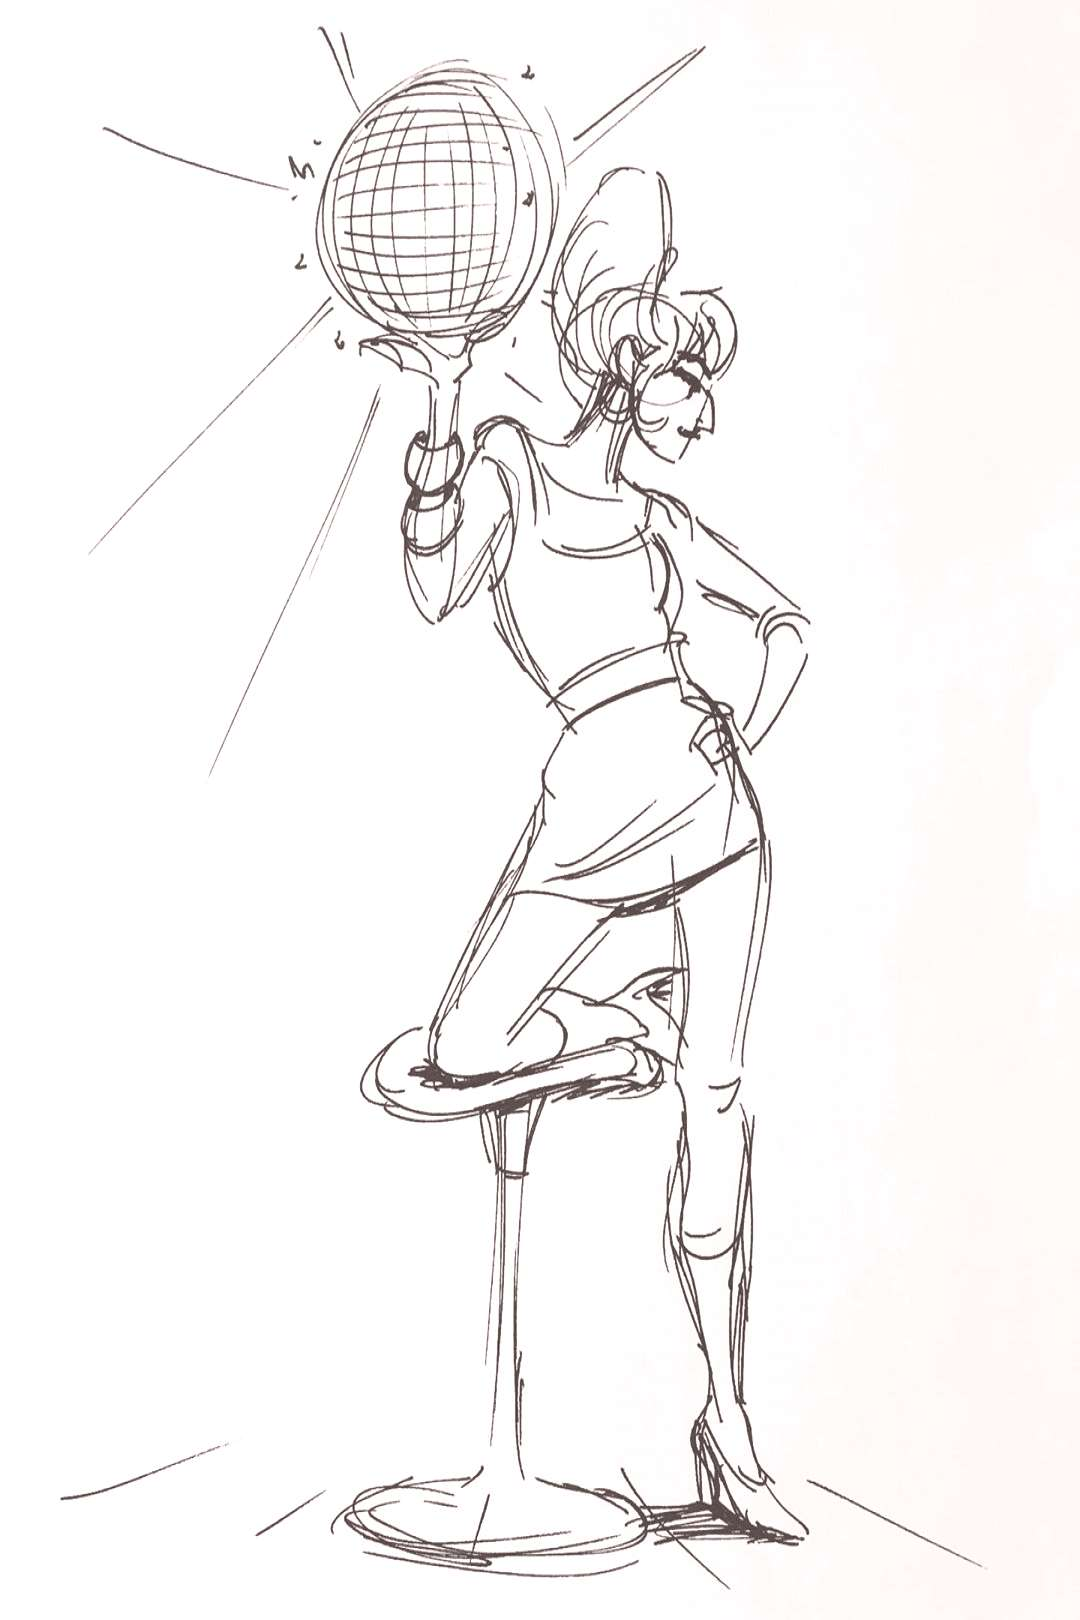 More gesture drawings - poses were around 4 minutes, I think? #ge